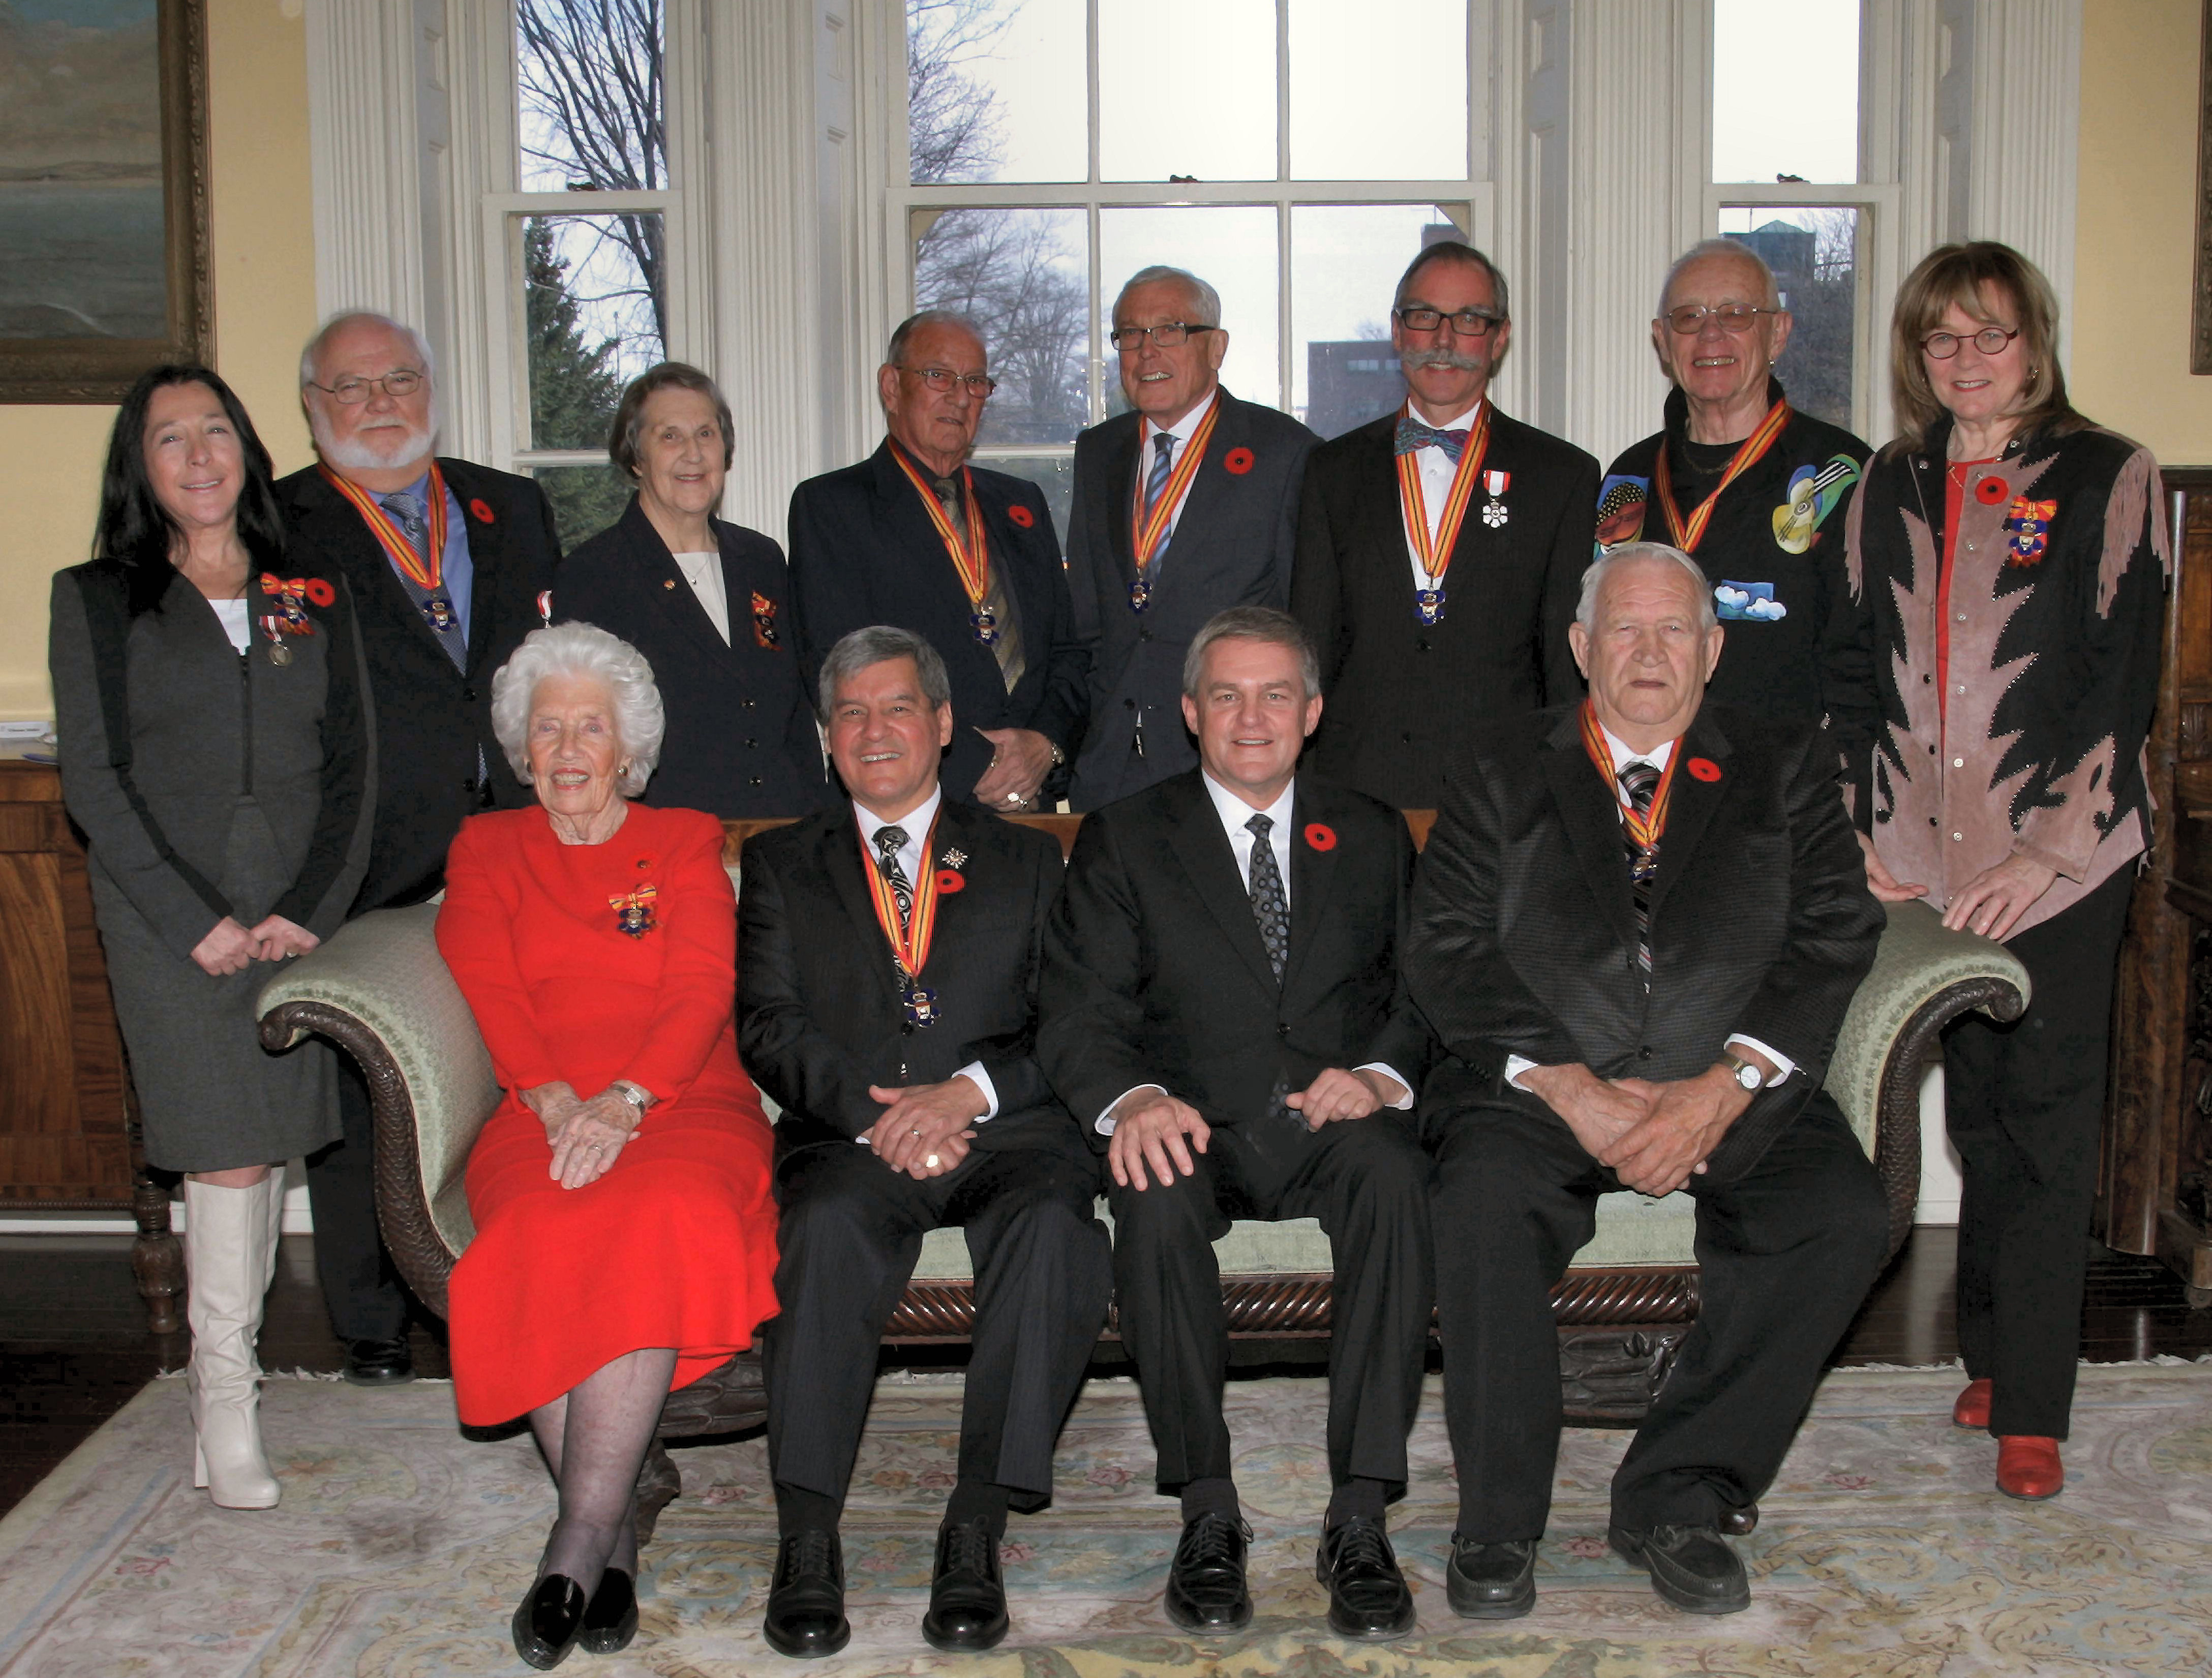 New members invested into the Order of New Brunswick for 2013